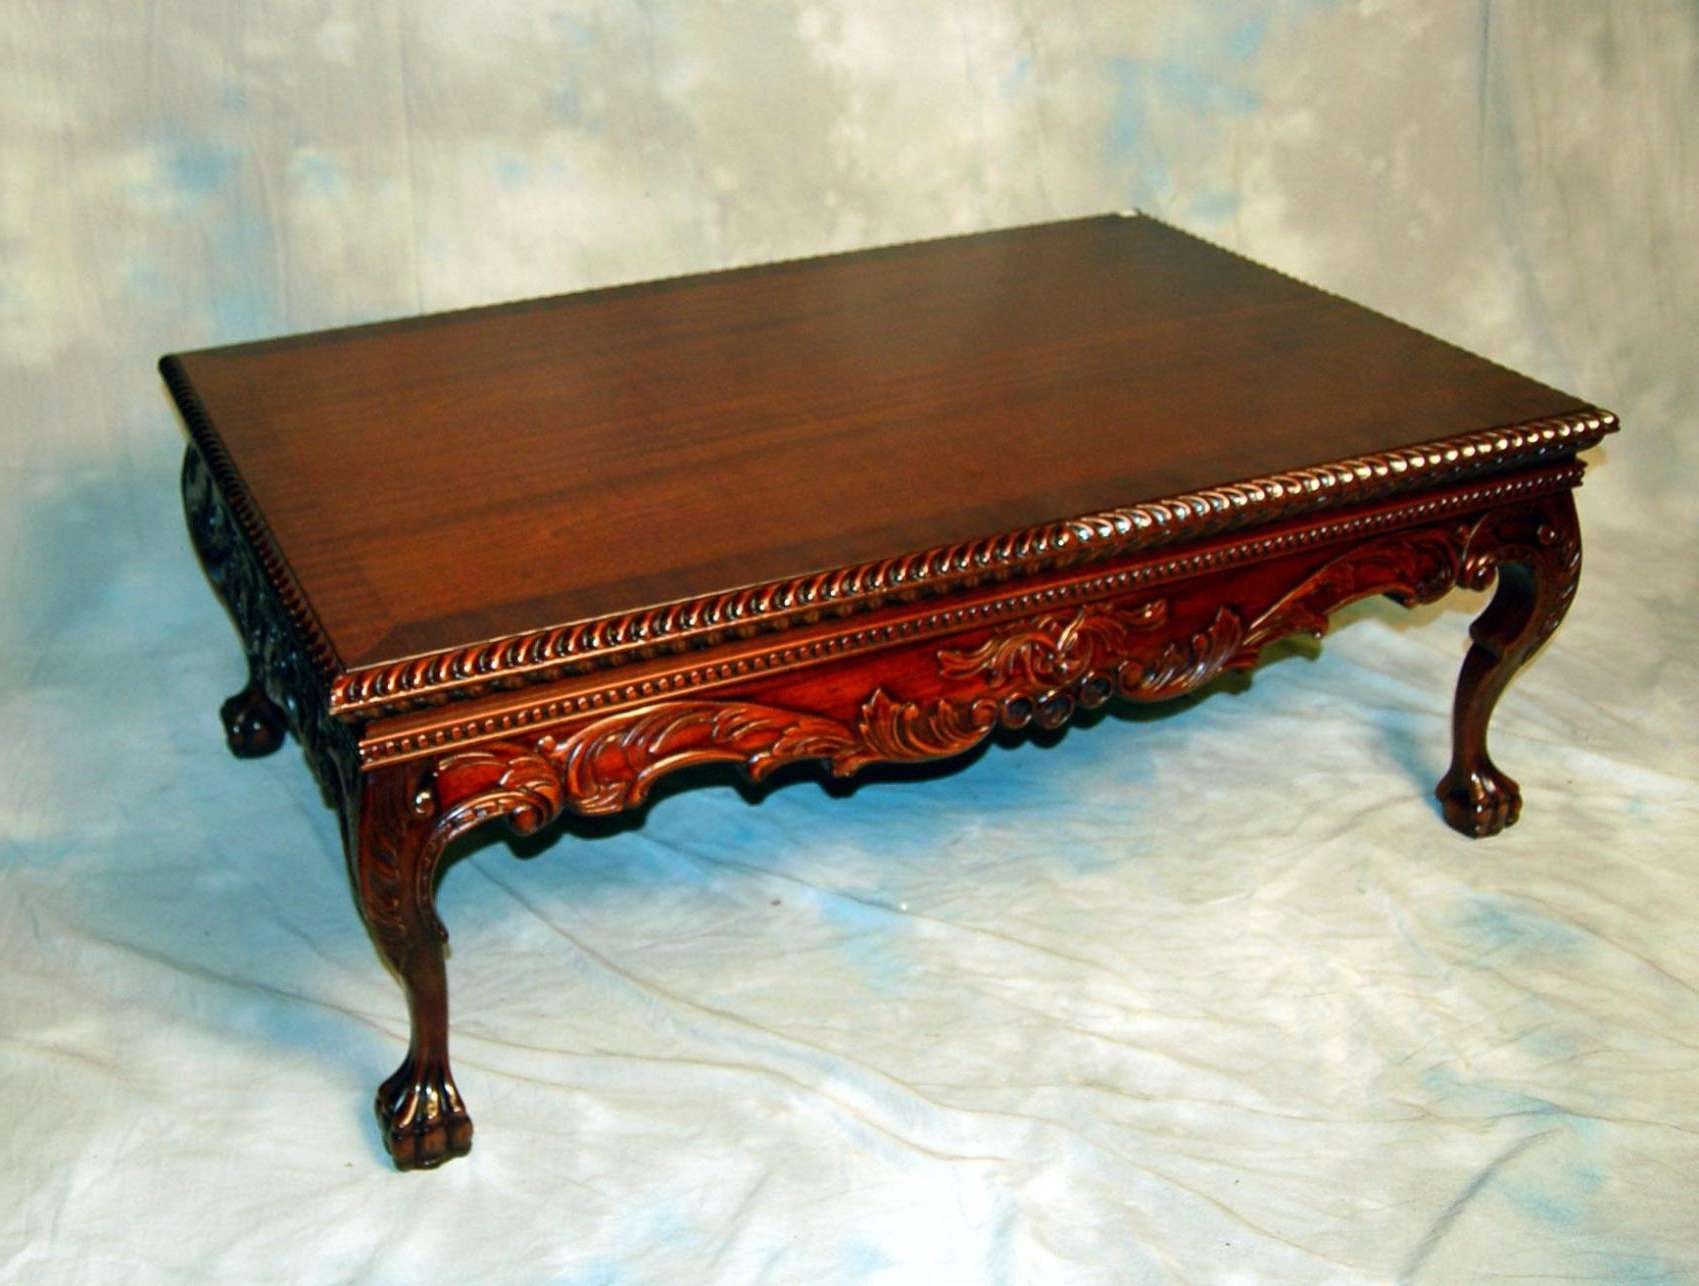 Favorite Mahogany Coffee Tables Within Coffee Table, Mahogany Coffee Table Antique Mahogany Coffee Table (View 2 of 20)